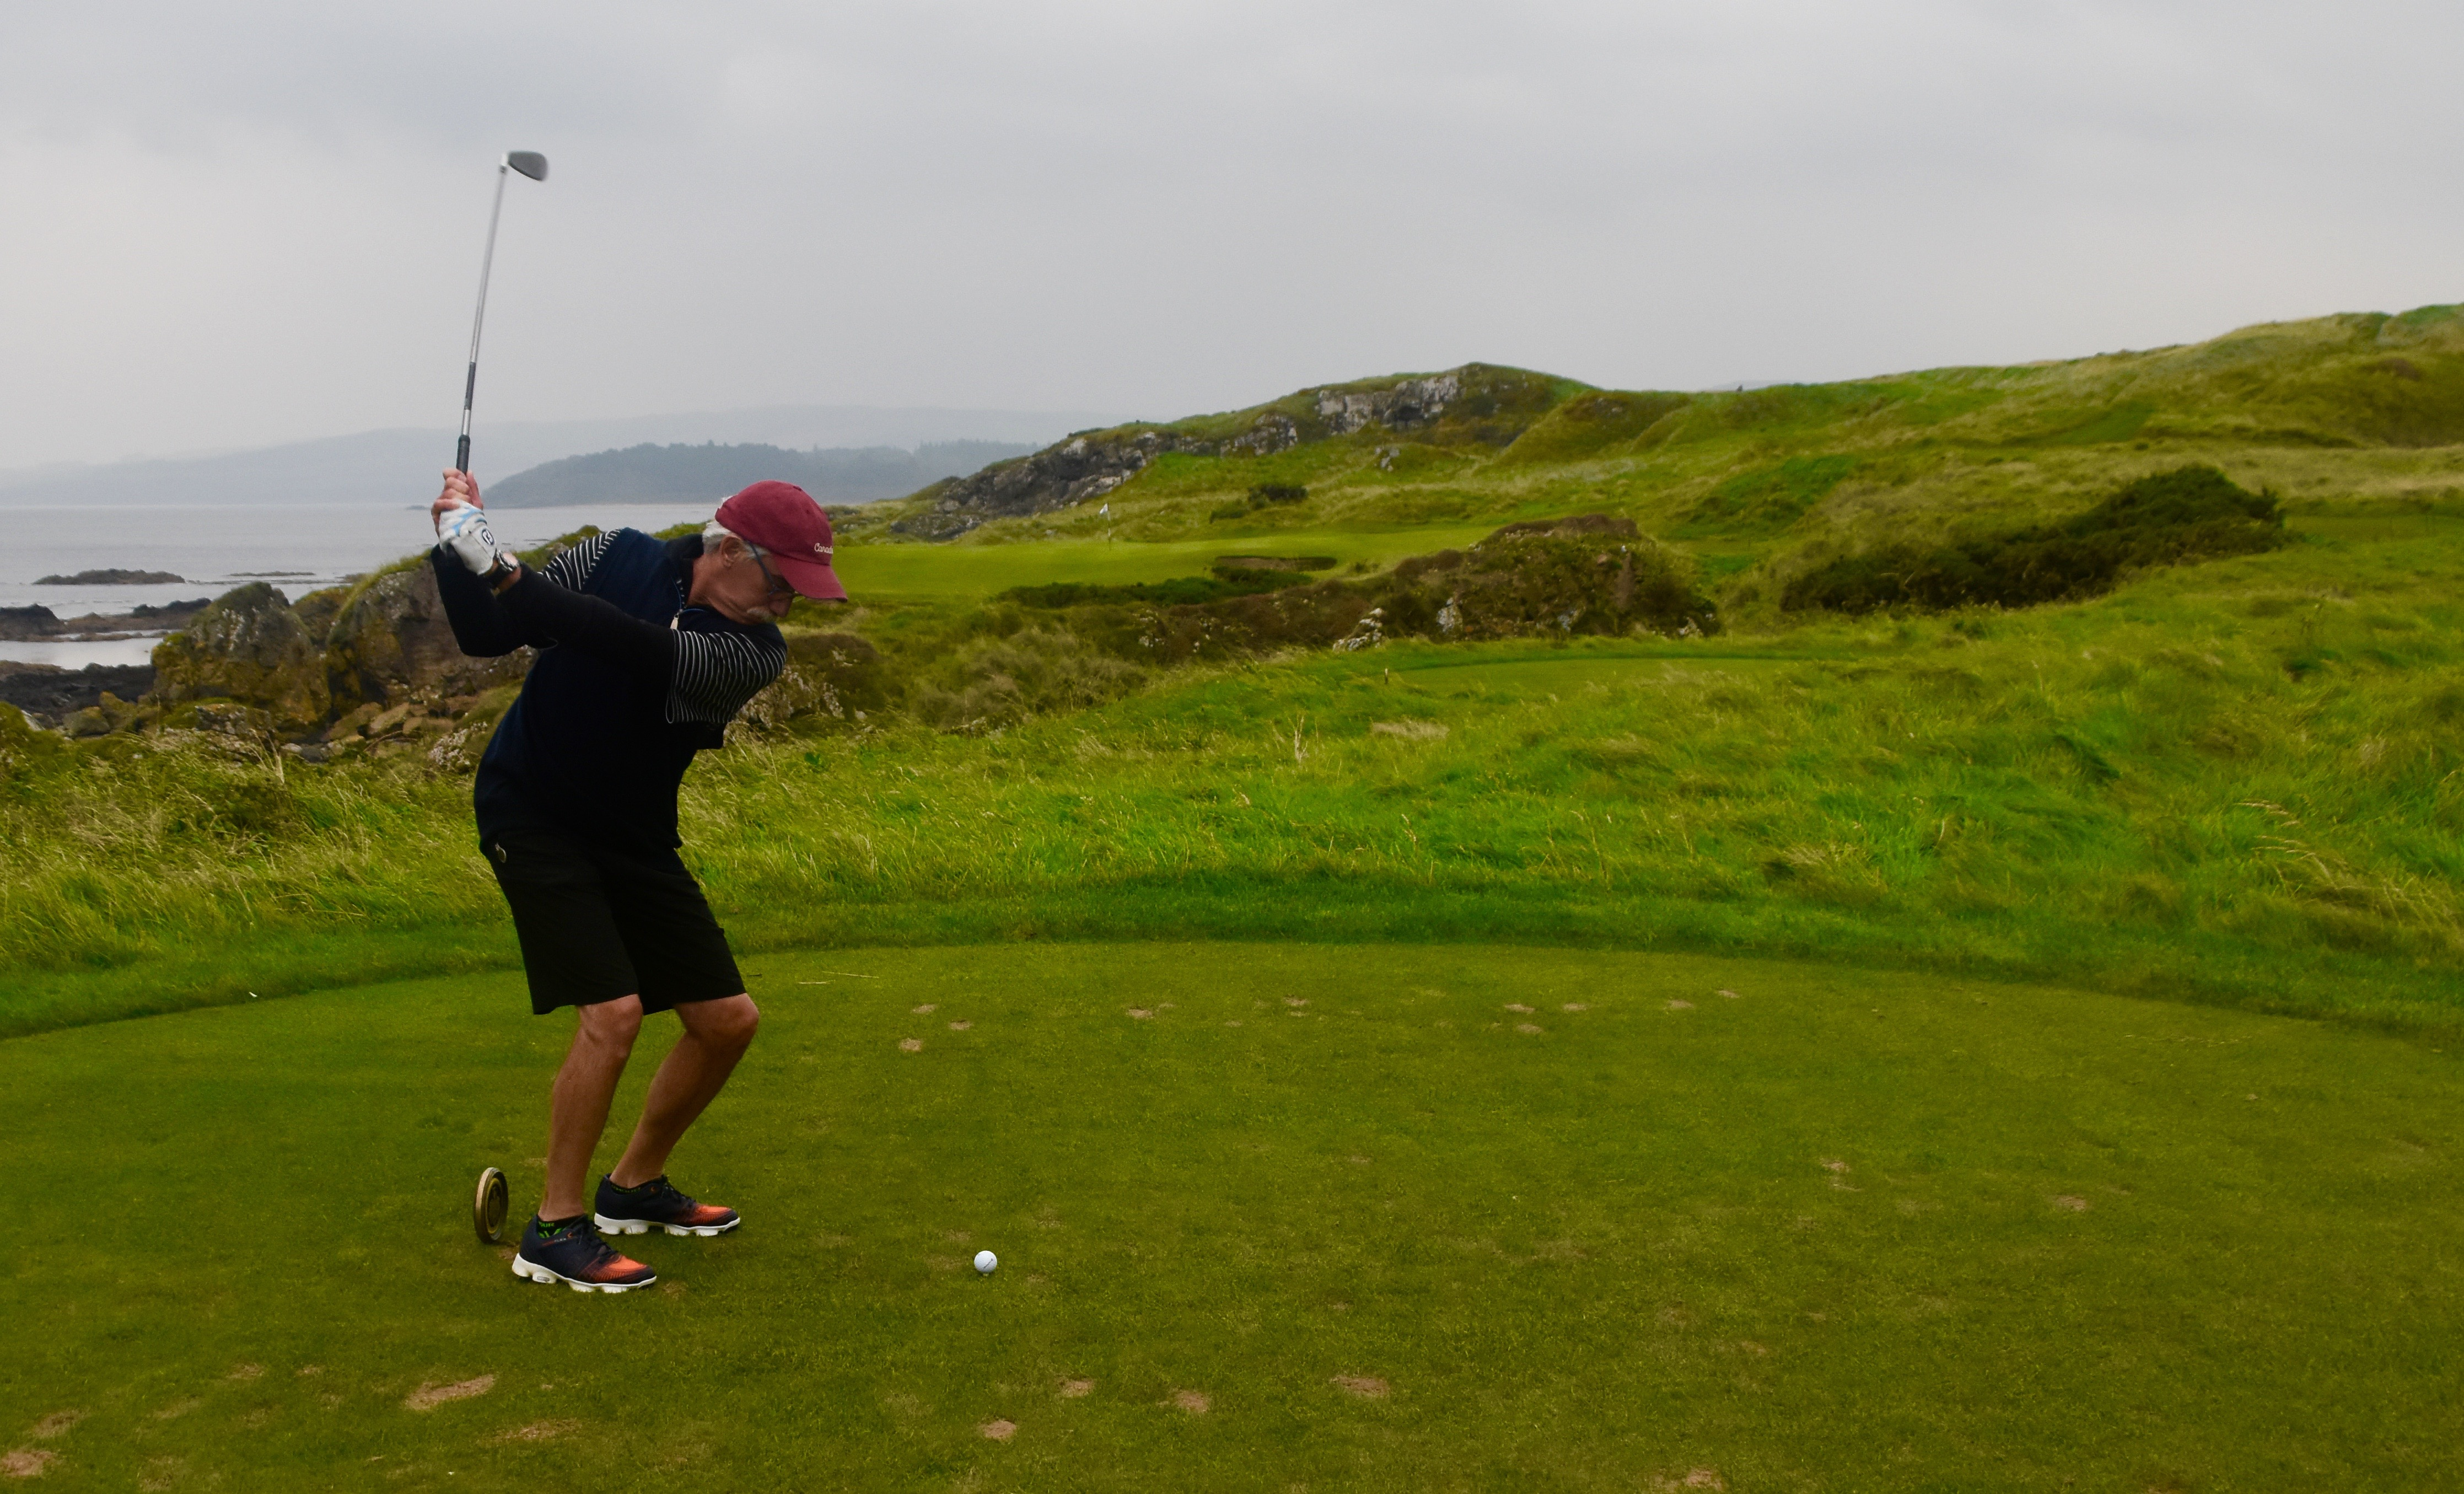 Pete Teeing off on No. 11